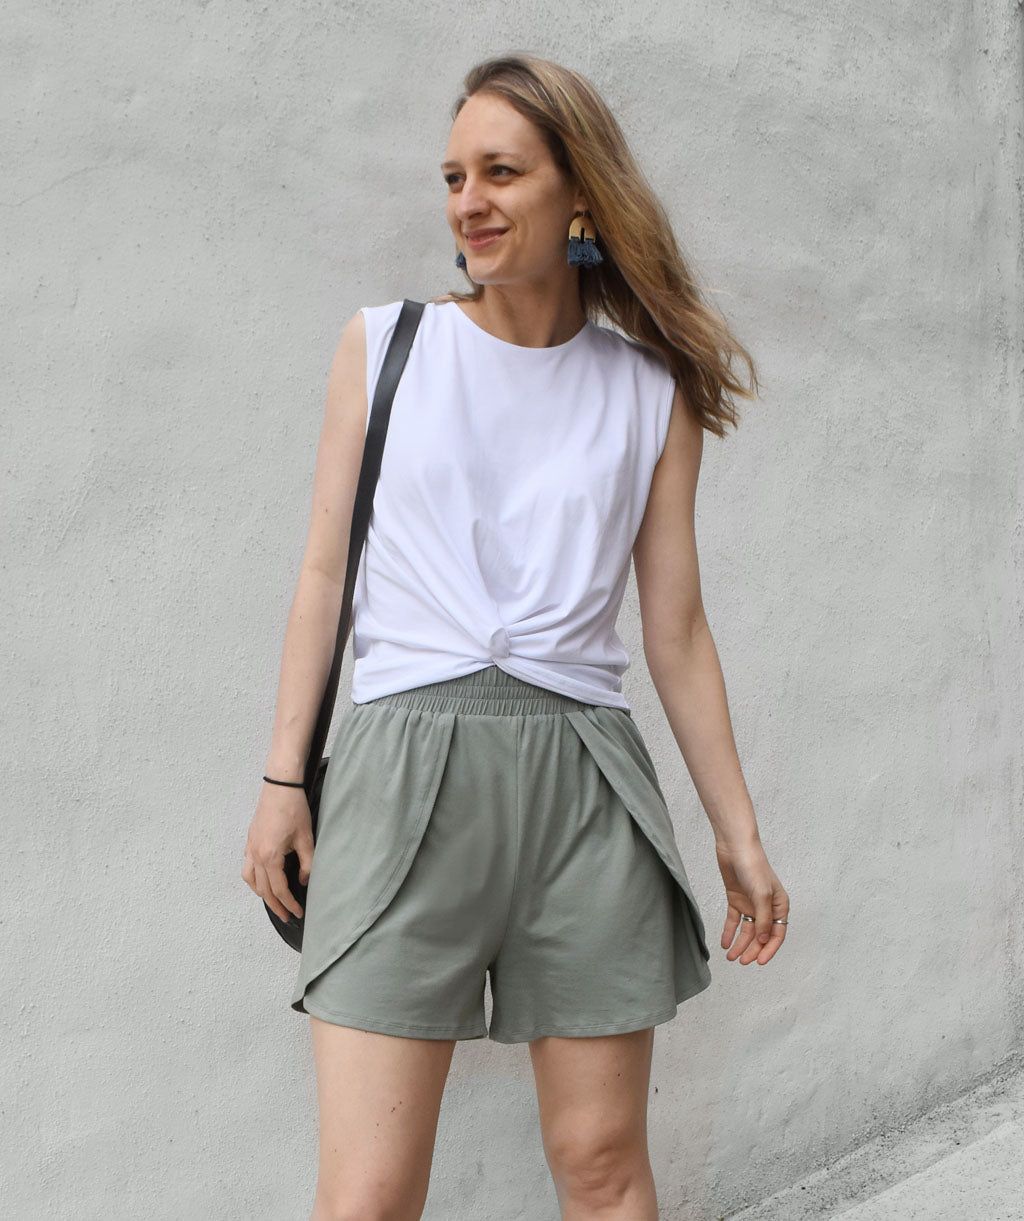 ALLIE petal shorts in Thunder Grey